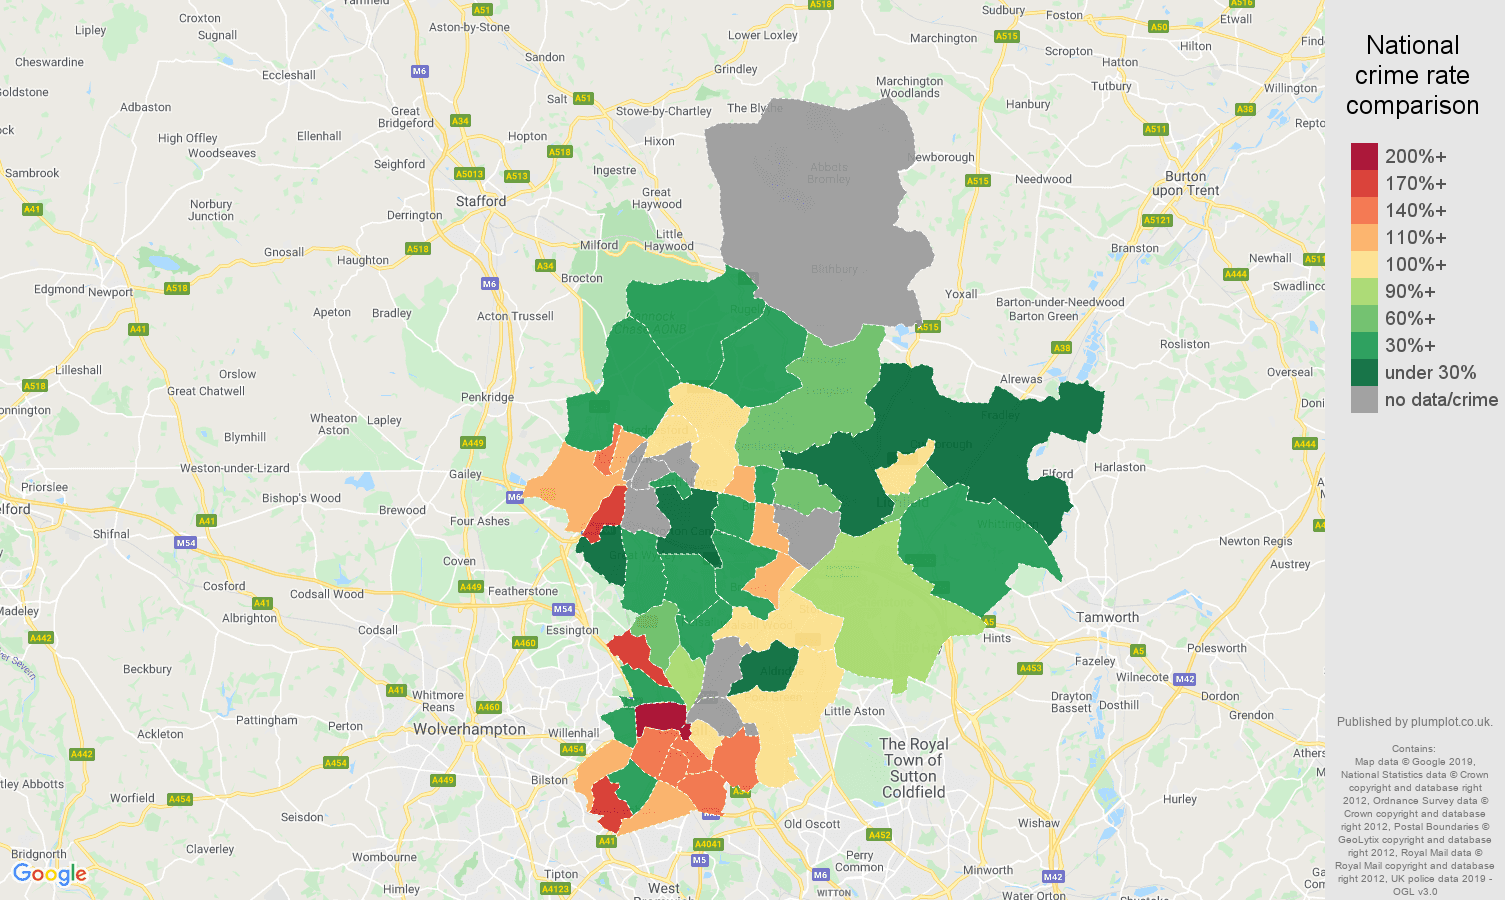 Walsall possession of weapons crime rate comparison map